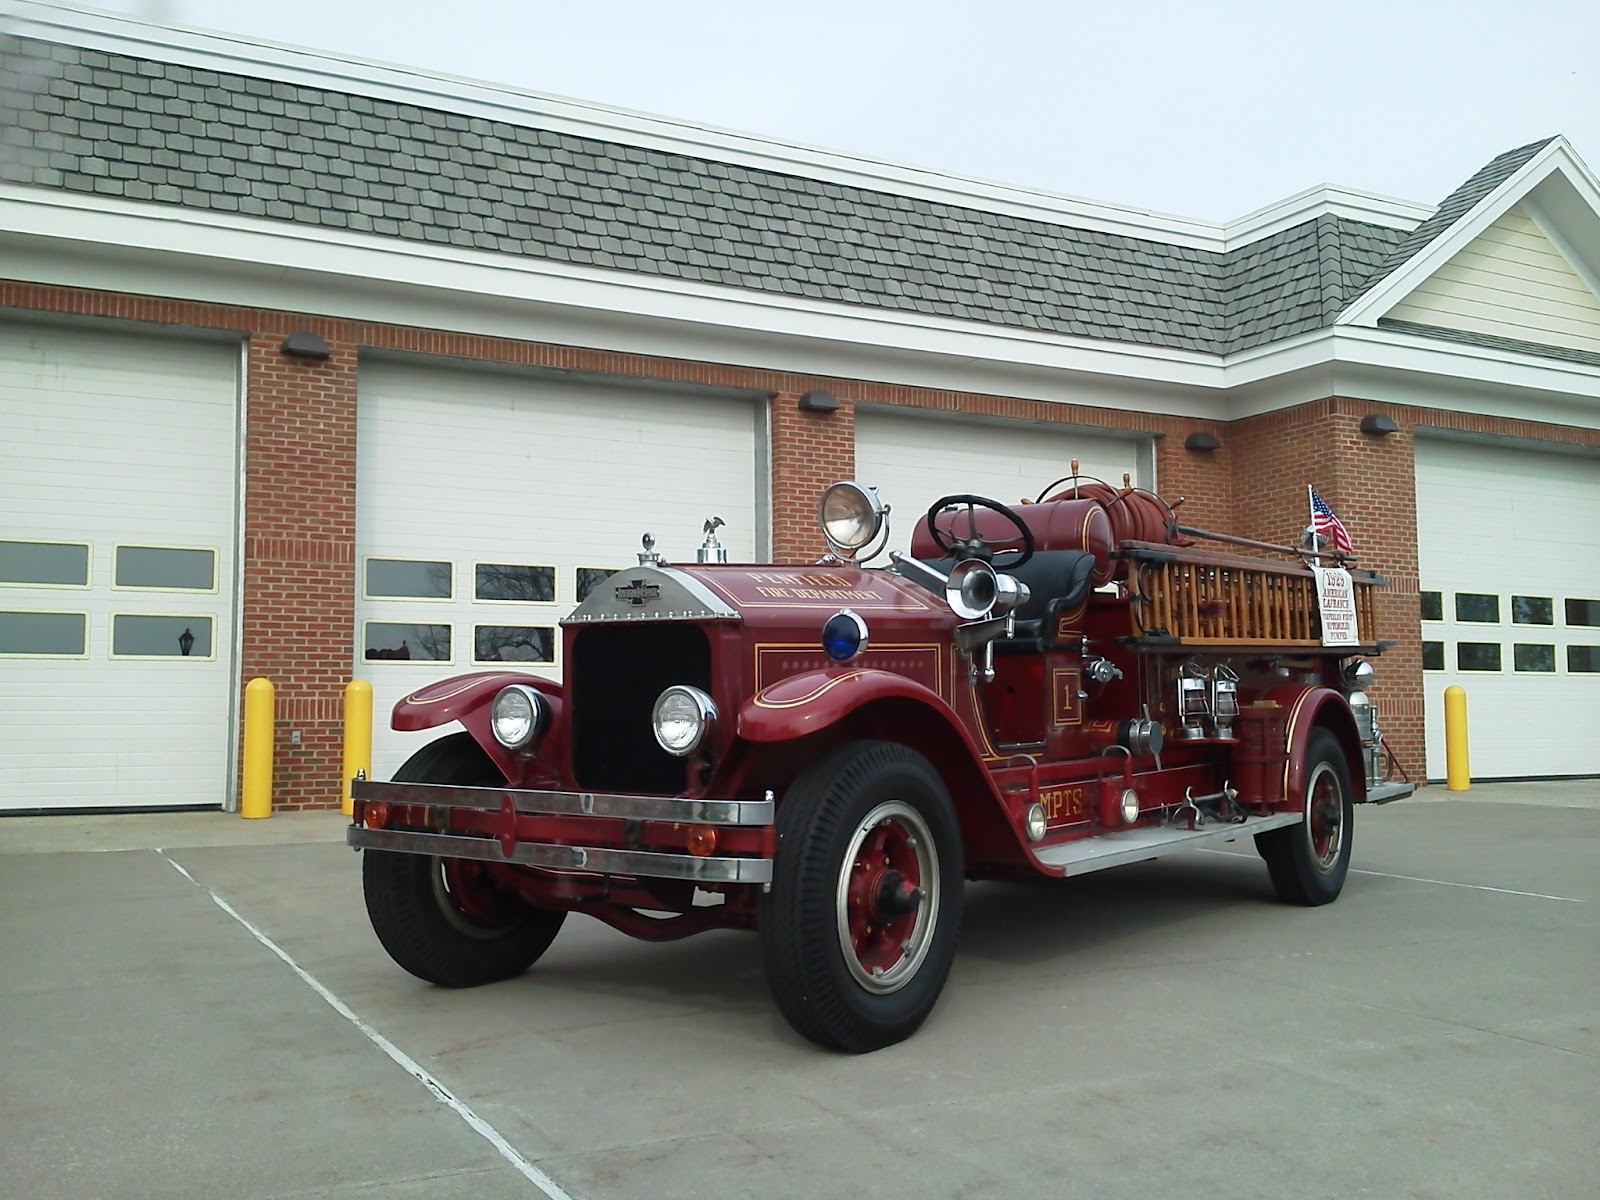 Penfield Fire Company: Retired Apparatus